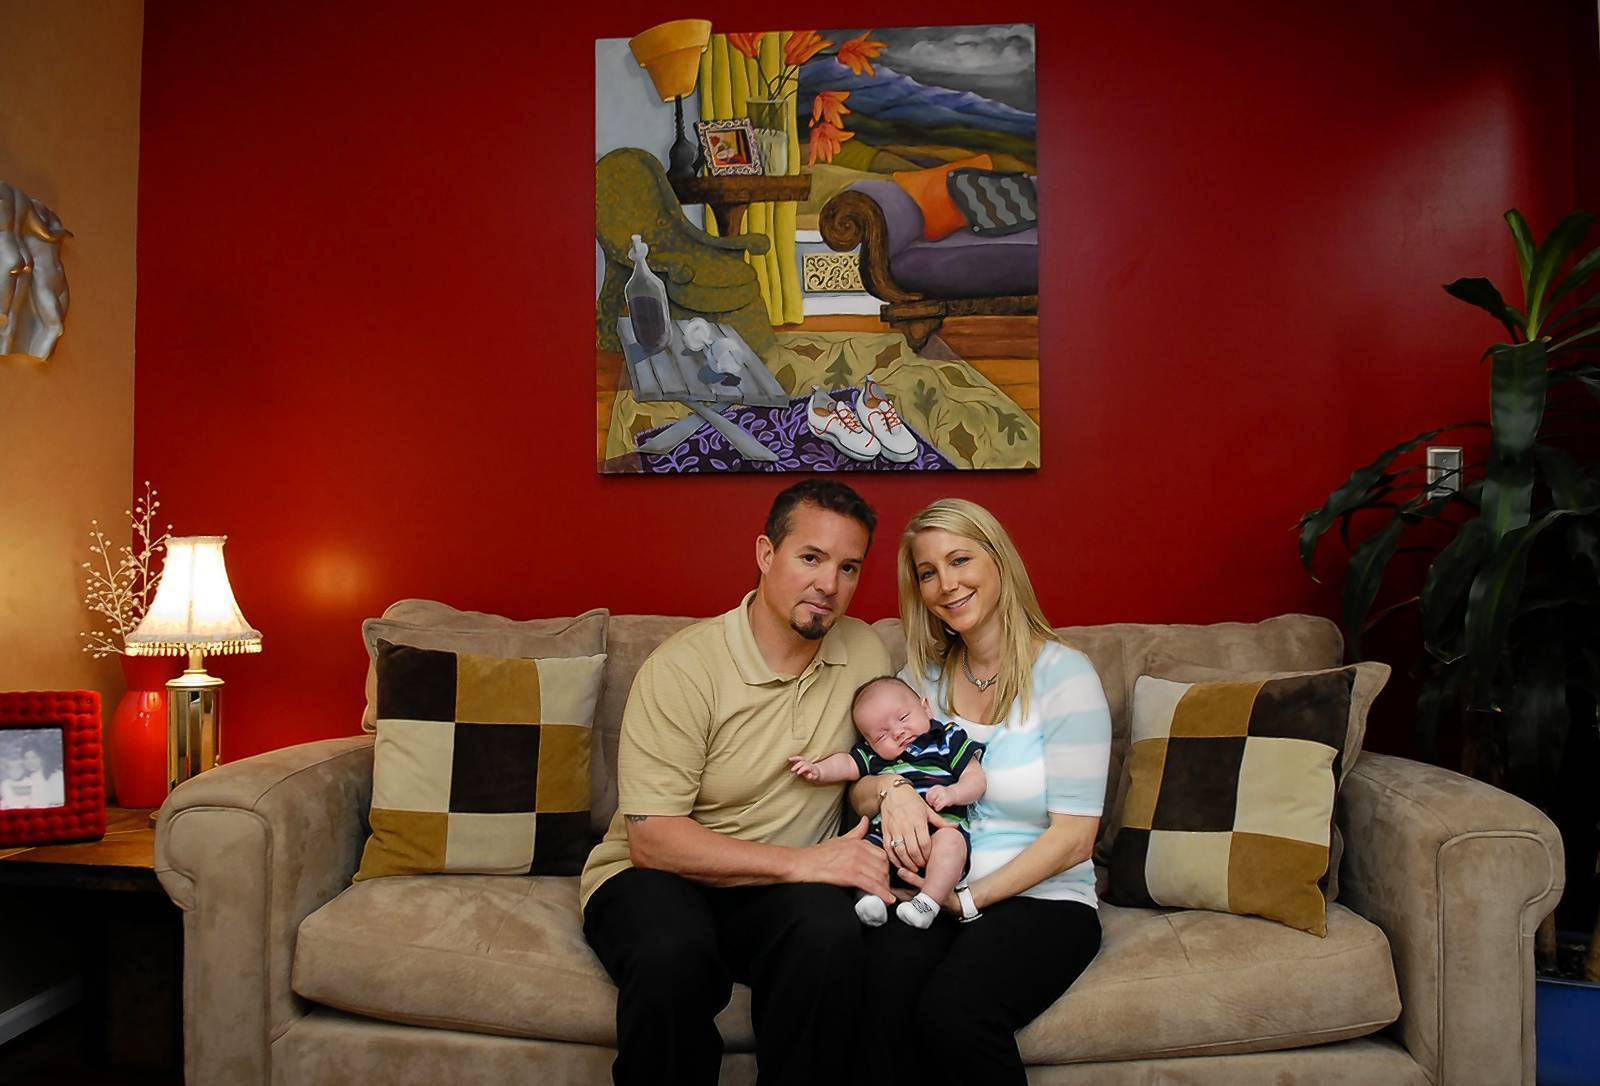 Jennifer Klein and her husband George Klein, Jr., with their infant son Luke, in the living room of their Perry Hall home.